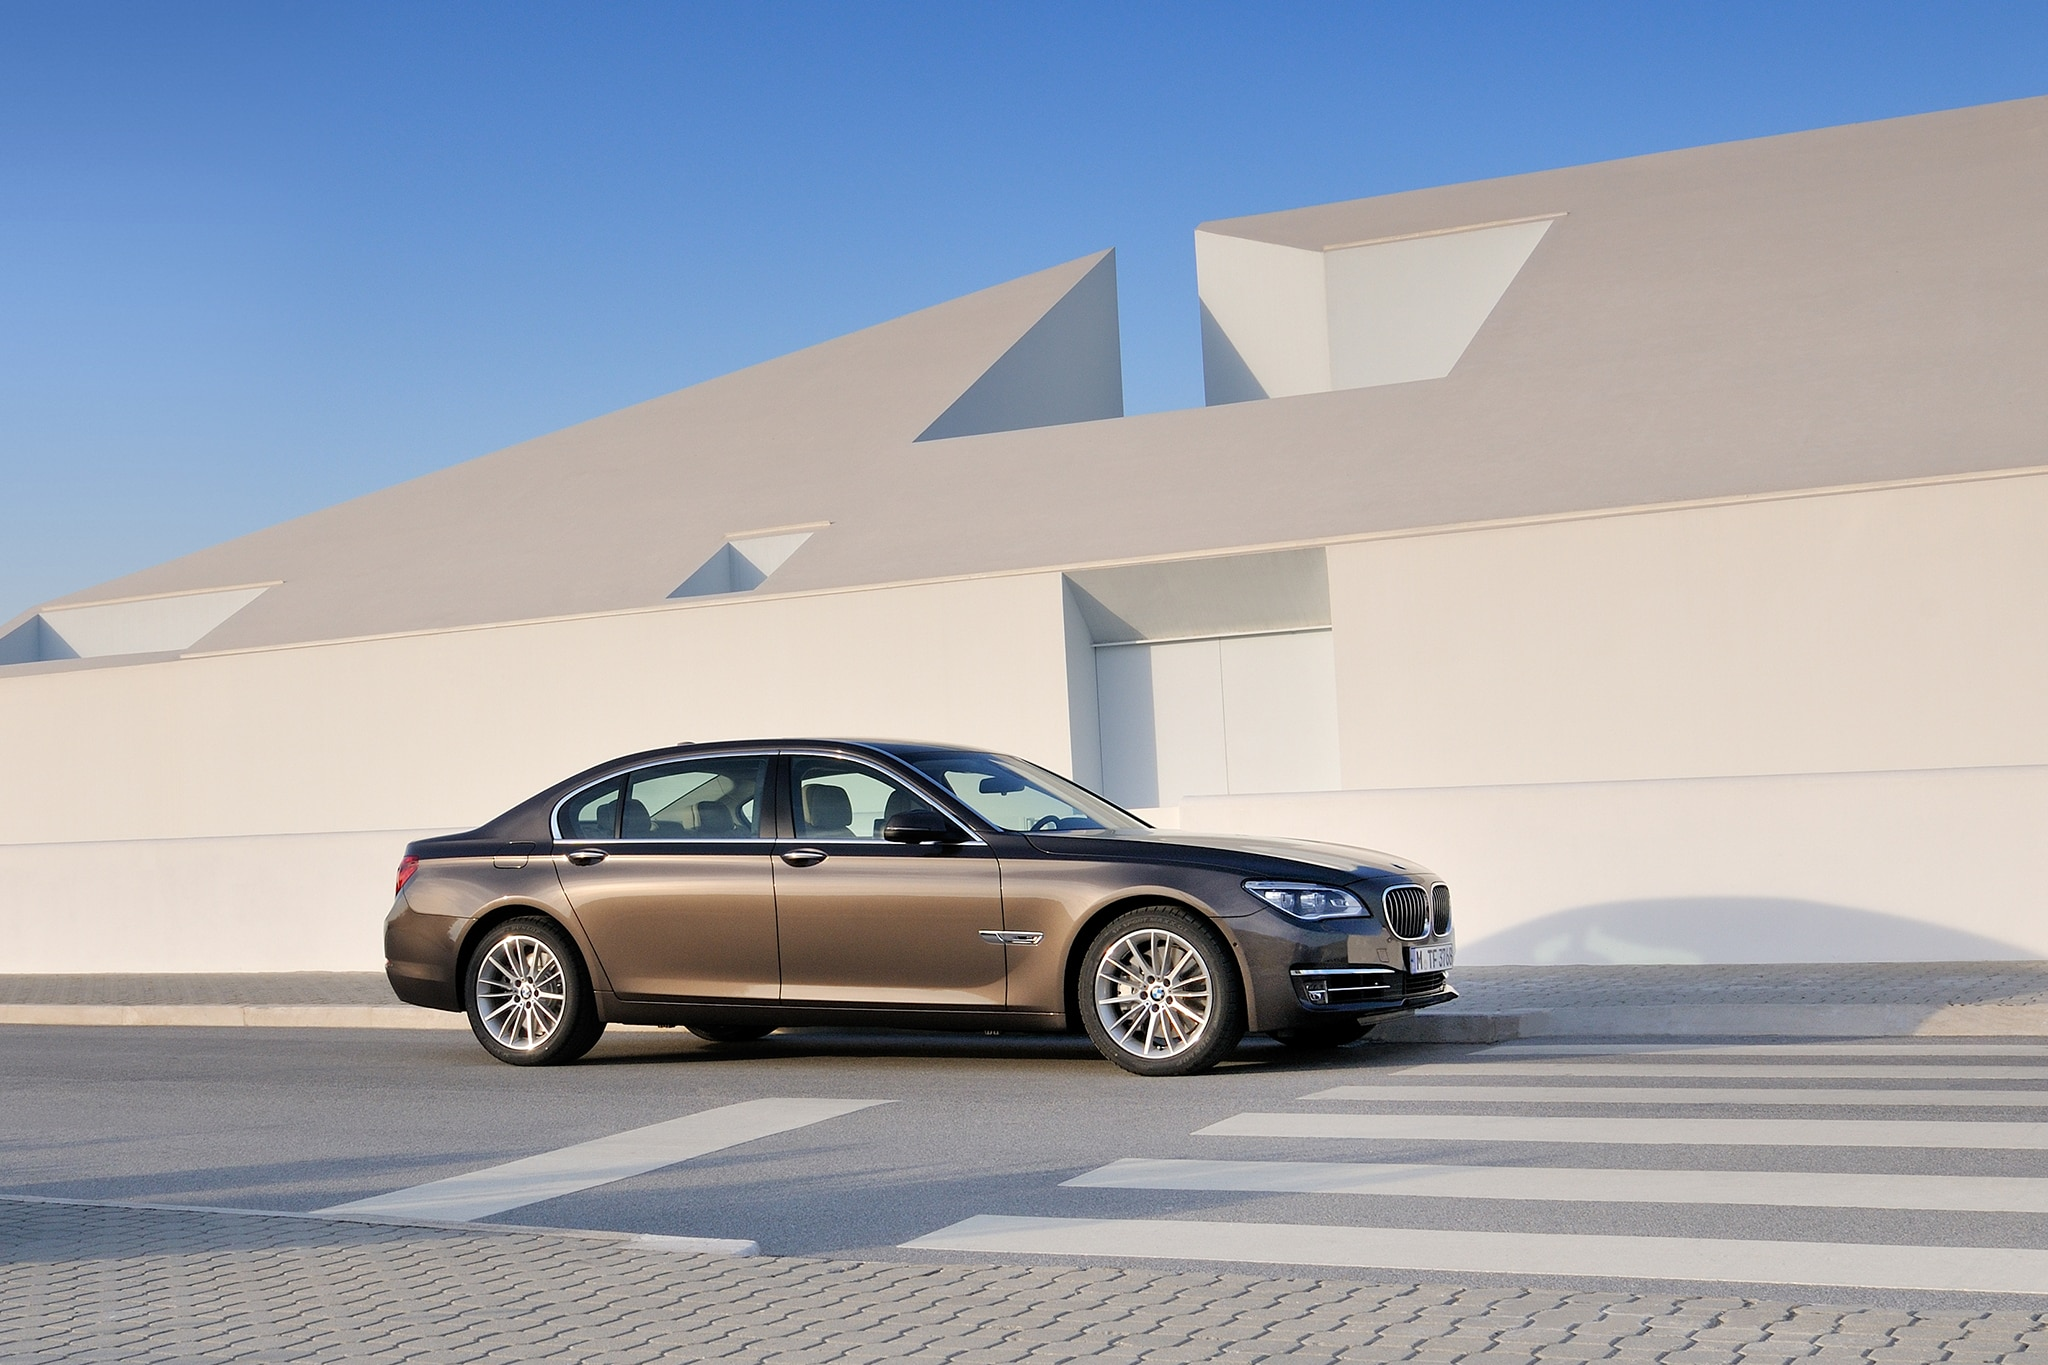 2014 BMW 7 Series Front Passengers Side View1